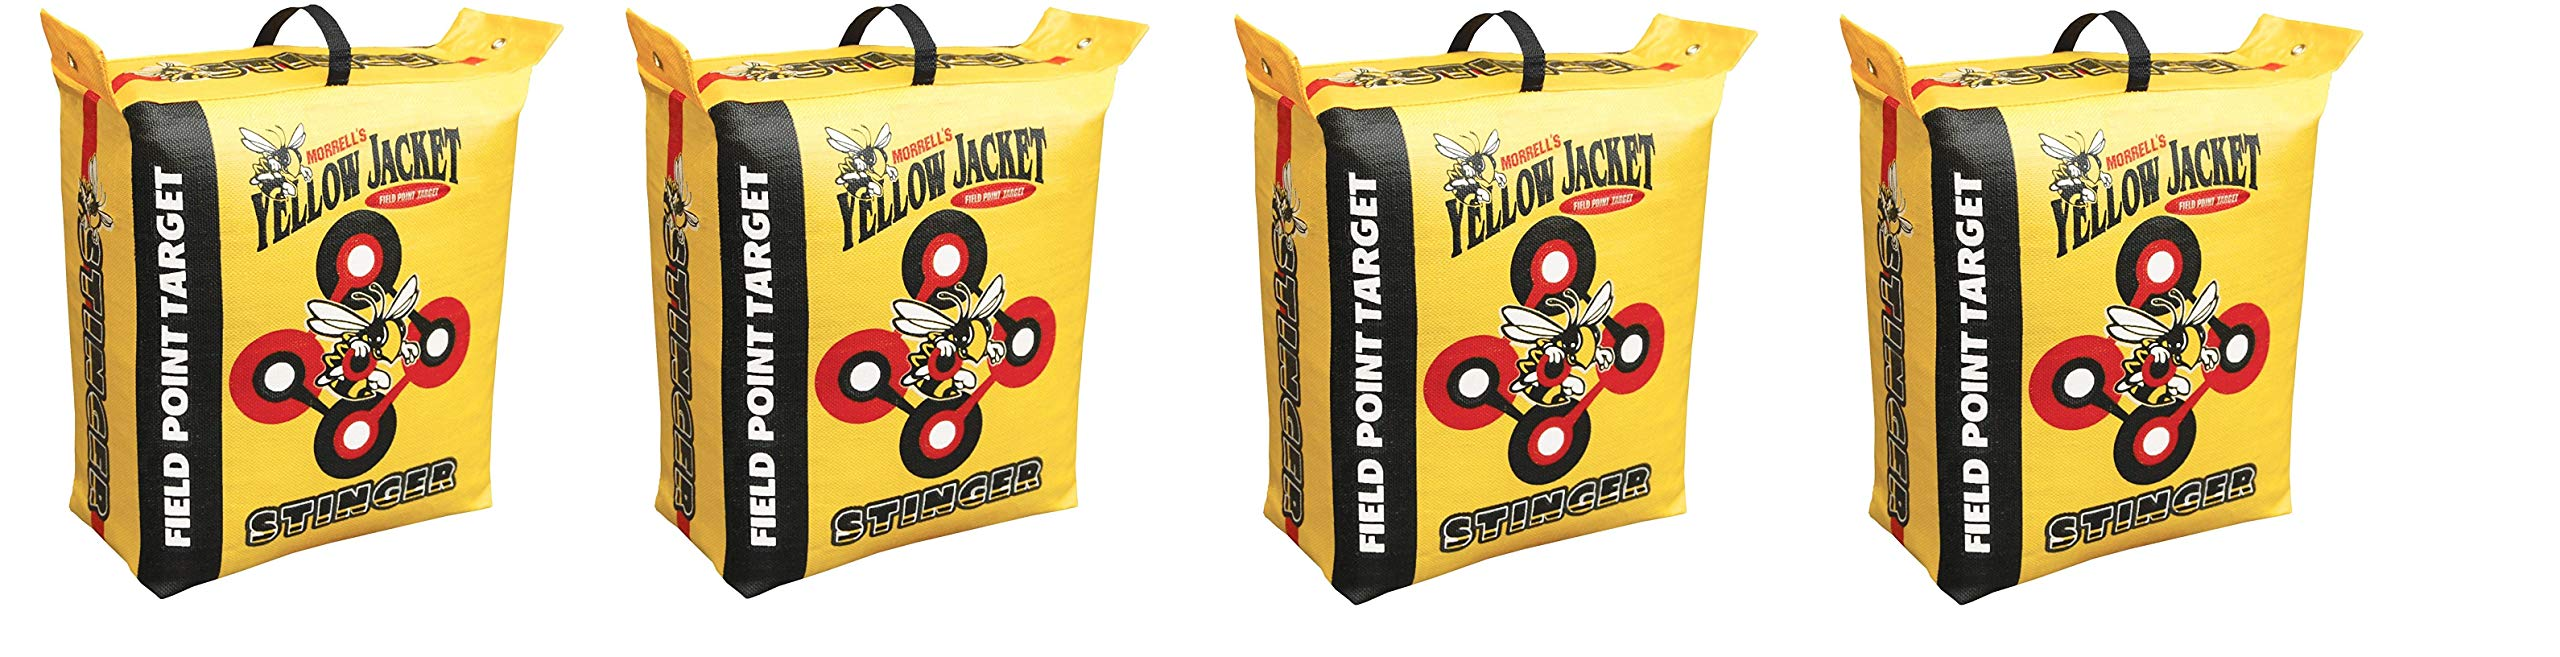 Morrell Yellow Jacket Stinger Field Point Bag Archery Target - Great for Compound and Traditional Bows (4-Pack) by Morrell (Image #1)